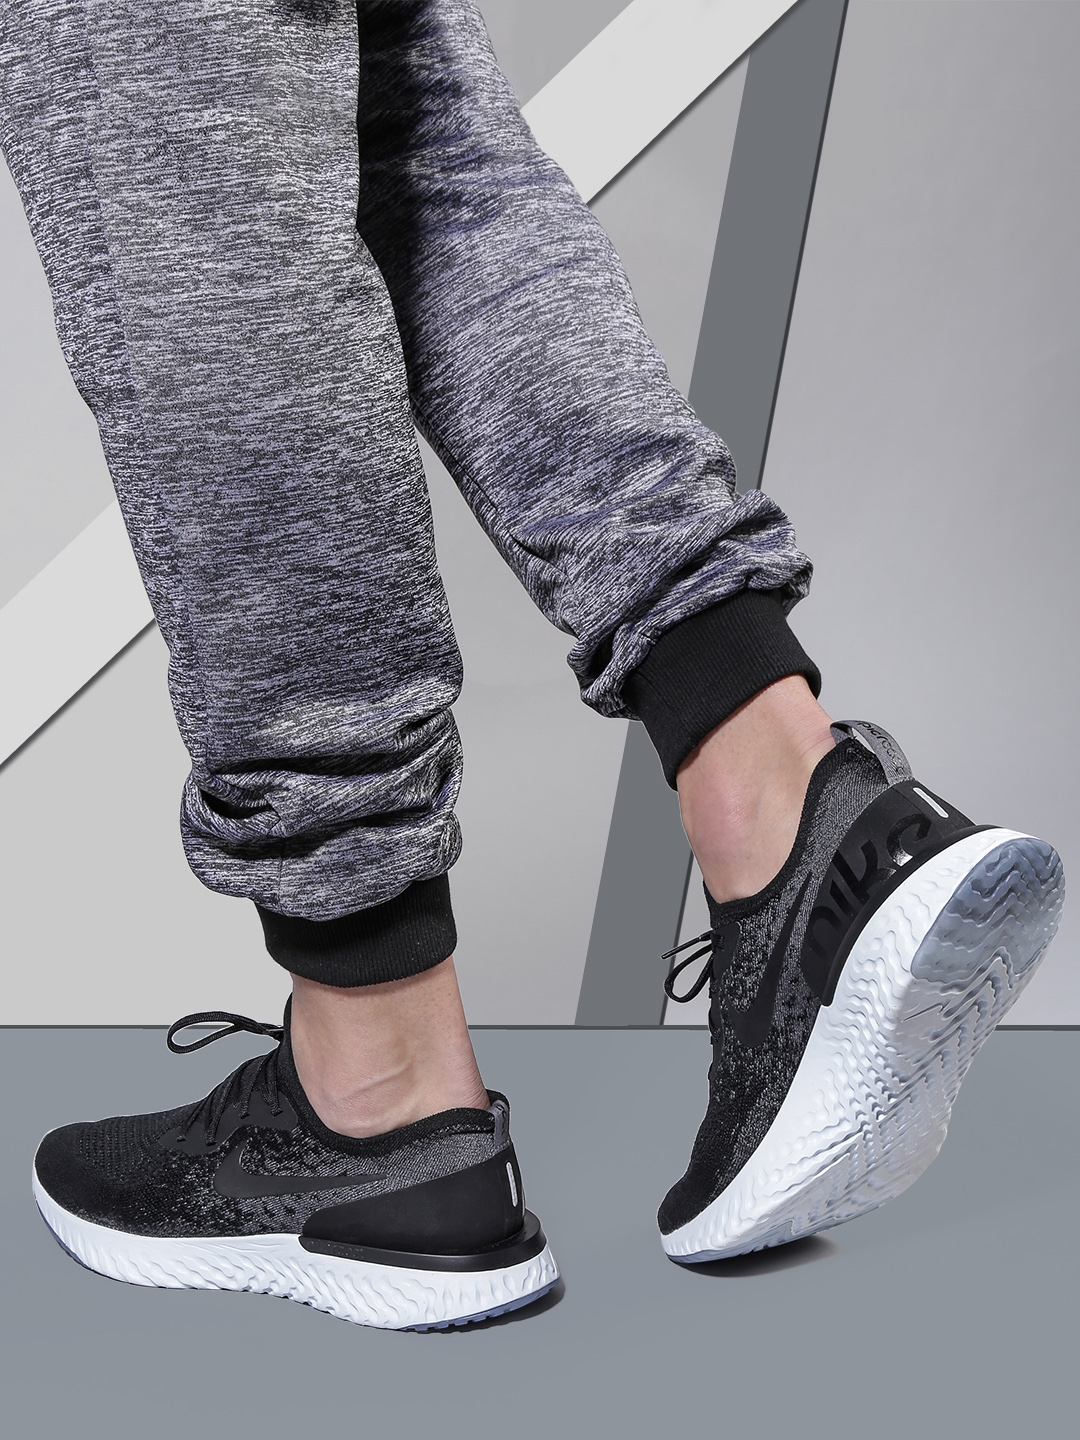 c29dc32f721 Buy Nike Men Black EPIC REACT FLYKNIT Running Shoes - Sports Shoes ...